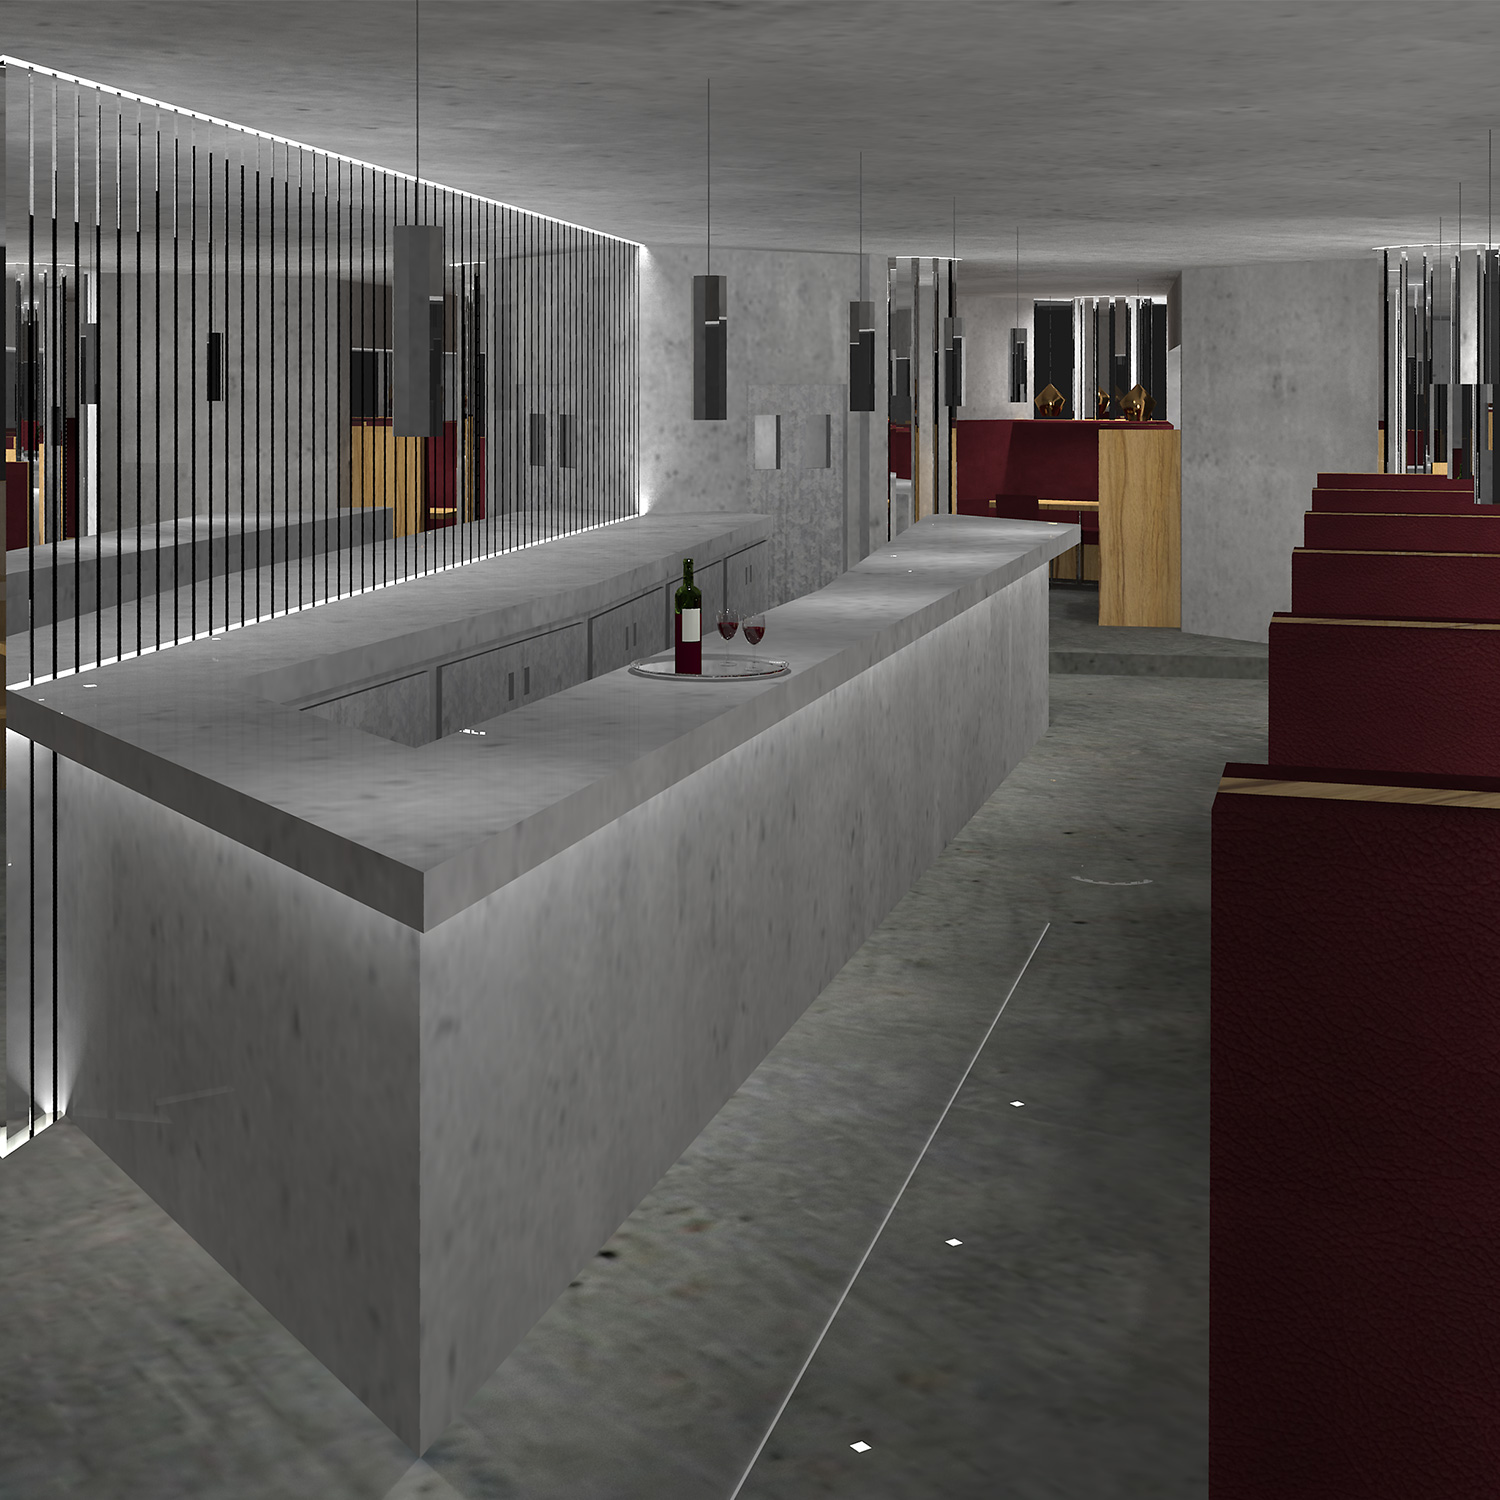 CGI modern art deco cocktail bar with concrete walls, chrome bars, pendants and oxblood leather seats